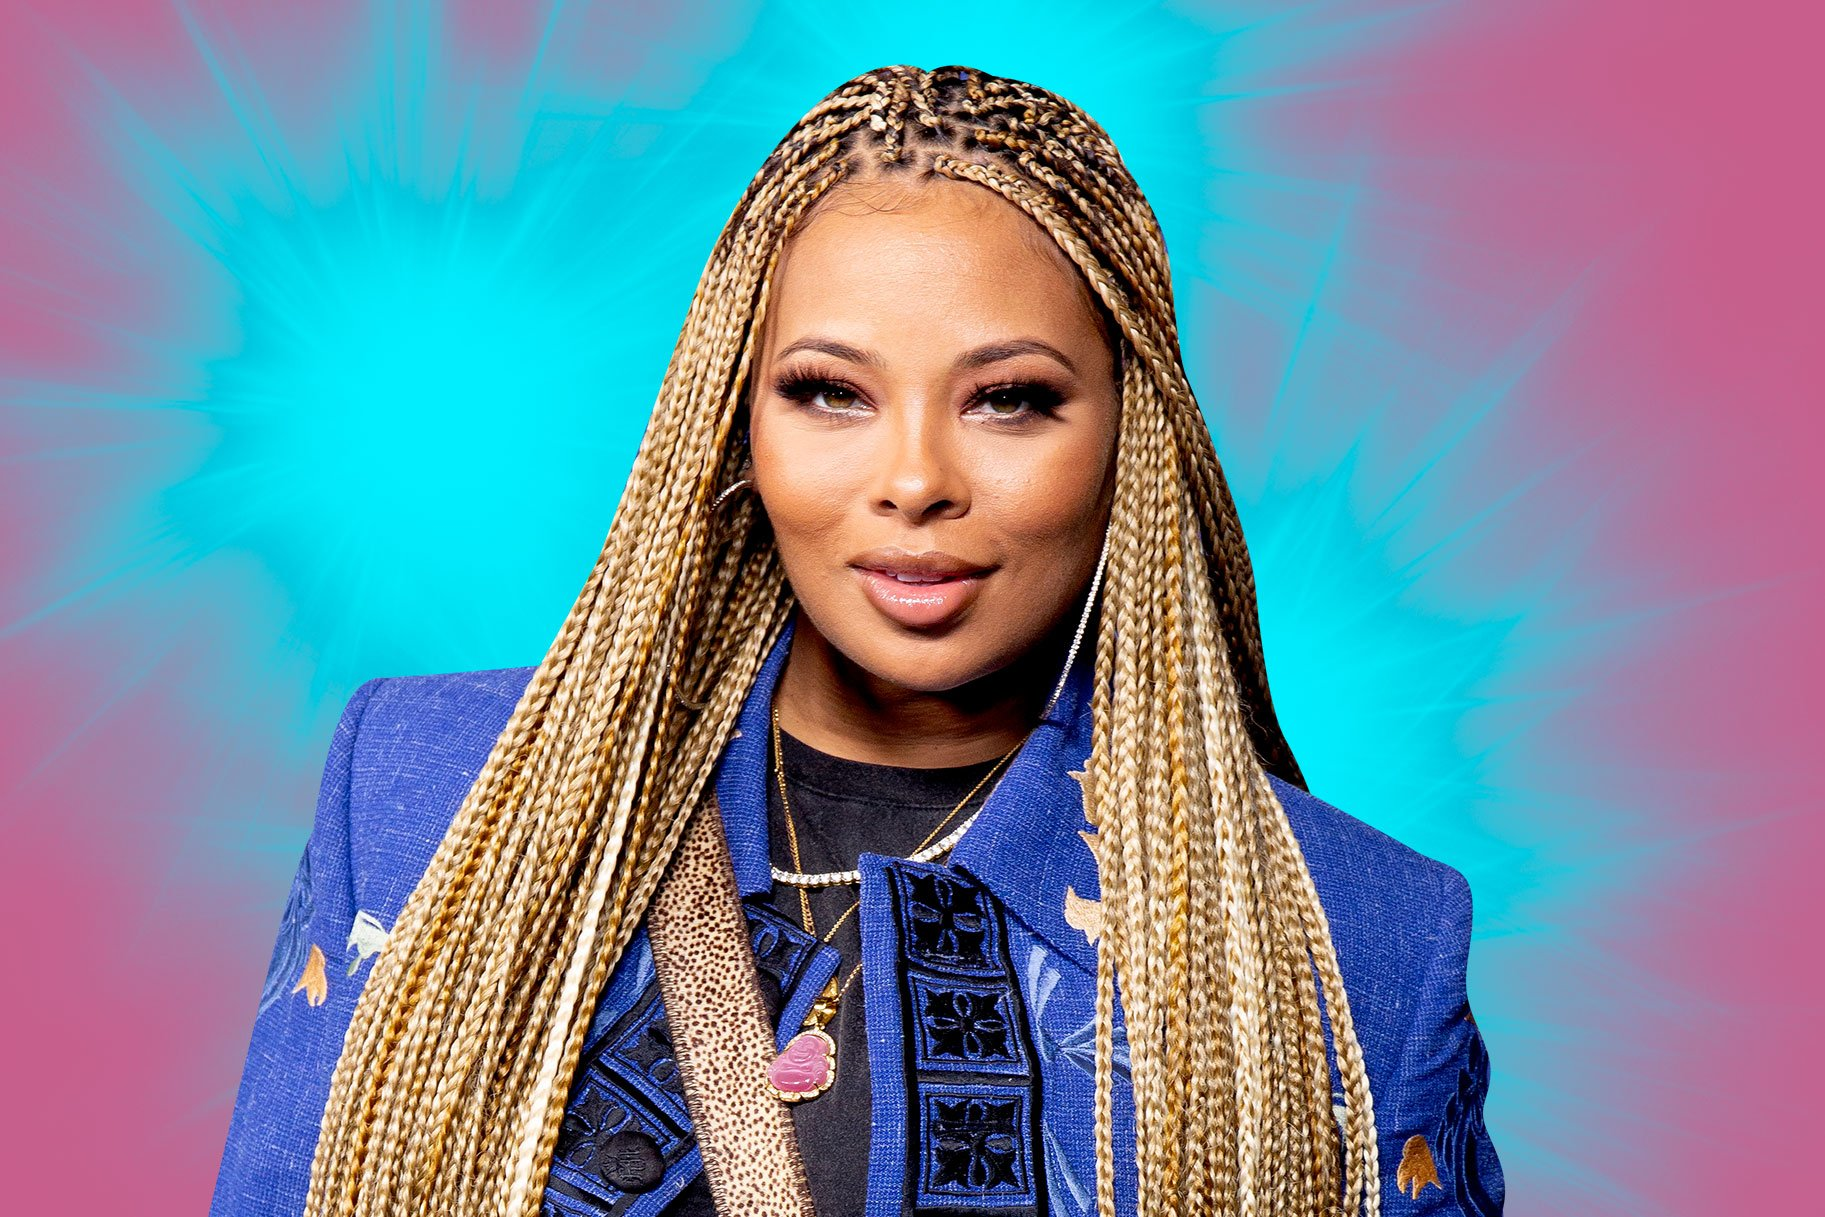 Eva Marcille's Video Featuring Marley Rae Opening Her Christmas Gift Will Make Fans Day – Check Out Her Priceless Reaction